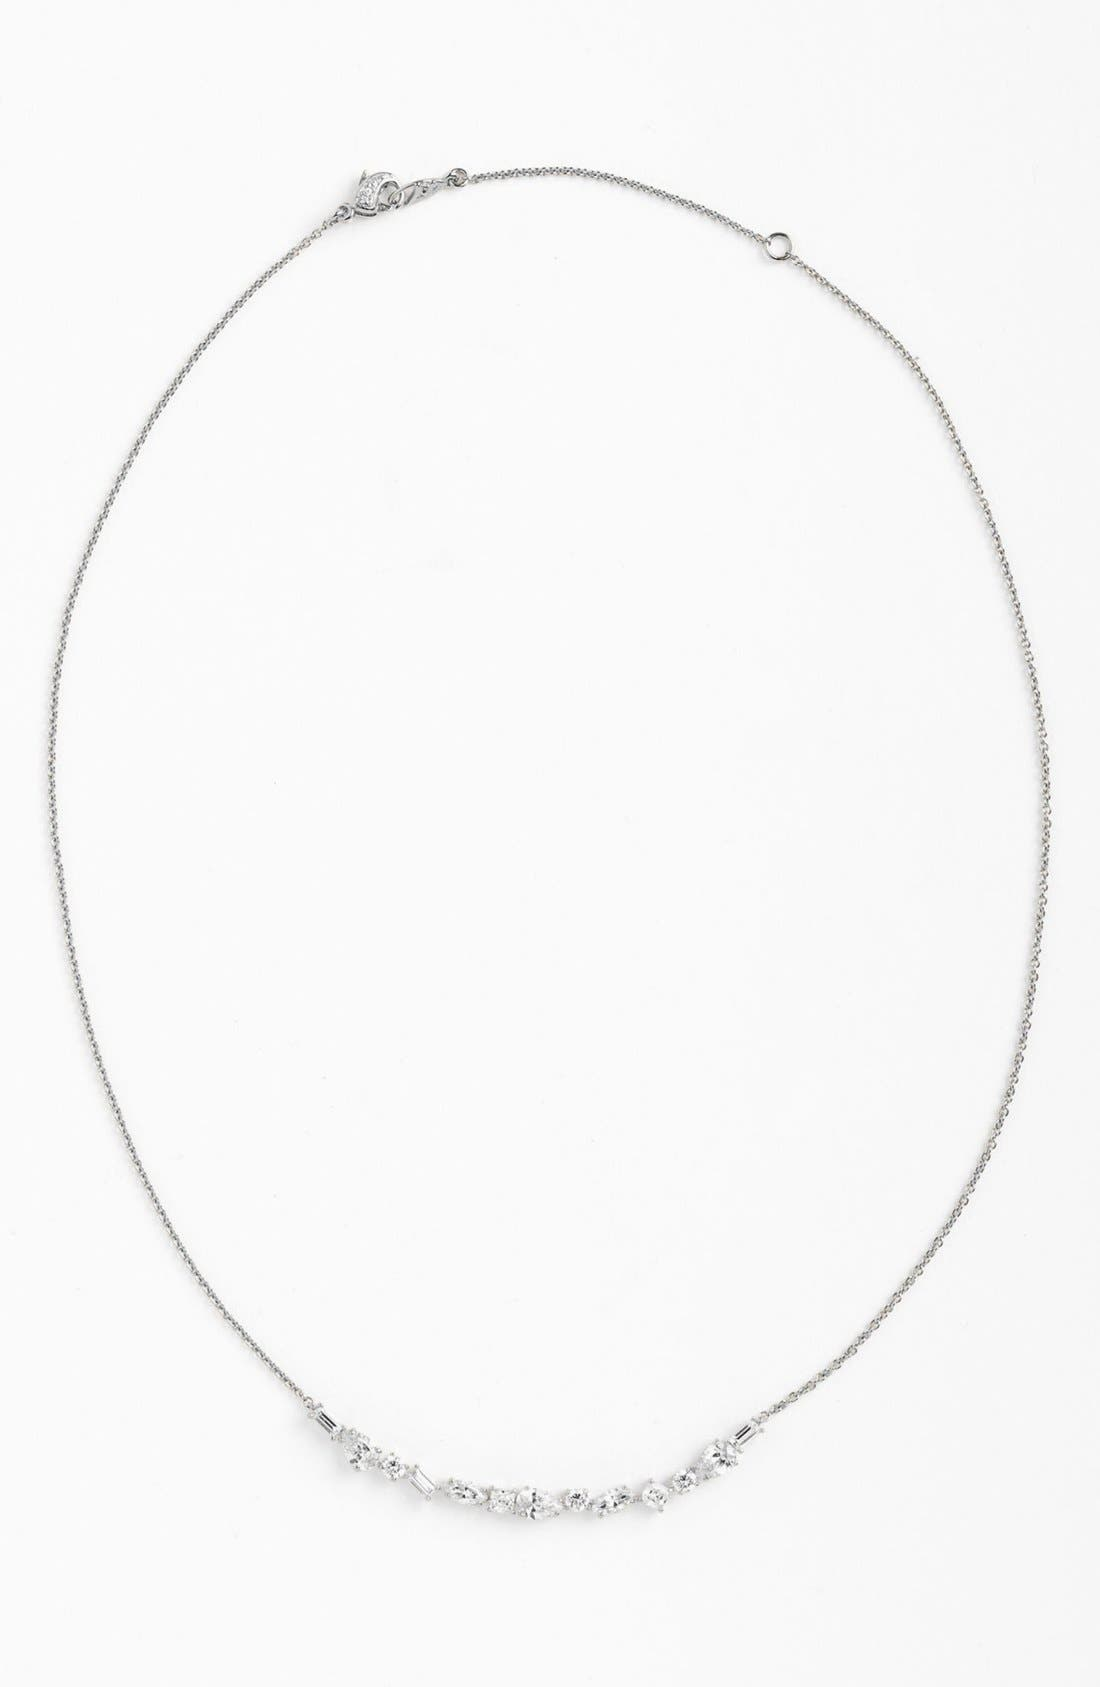 Alternate Image 1 Selected - Nadri Mixed Cut Crescent Necklace (Nordstrom Exclusive)